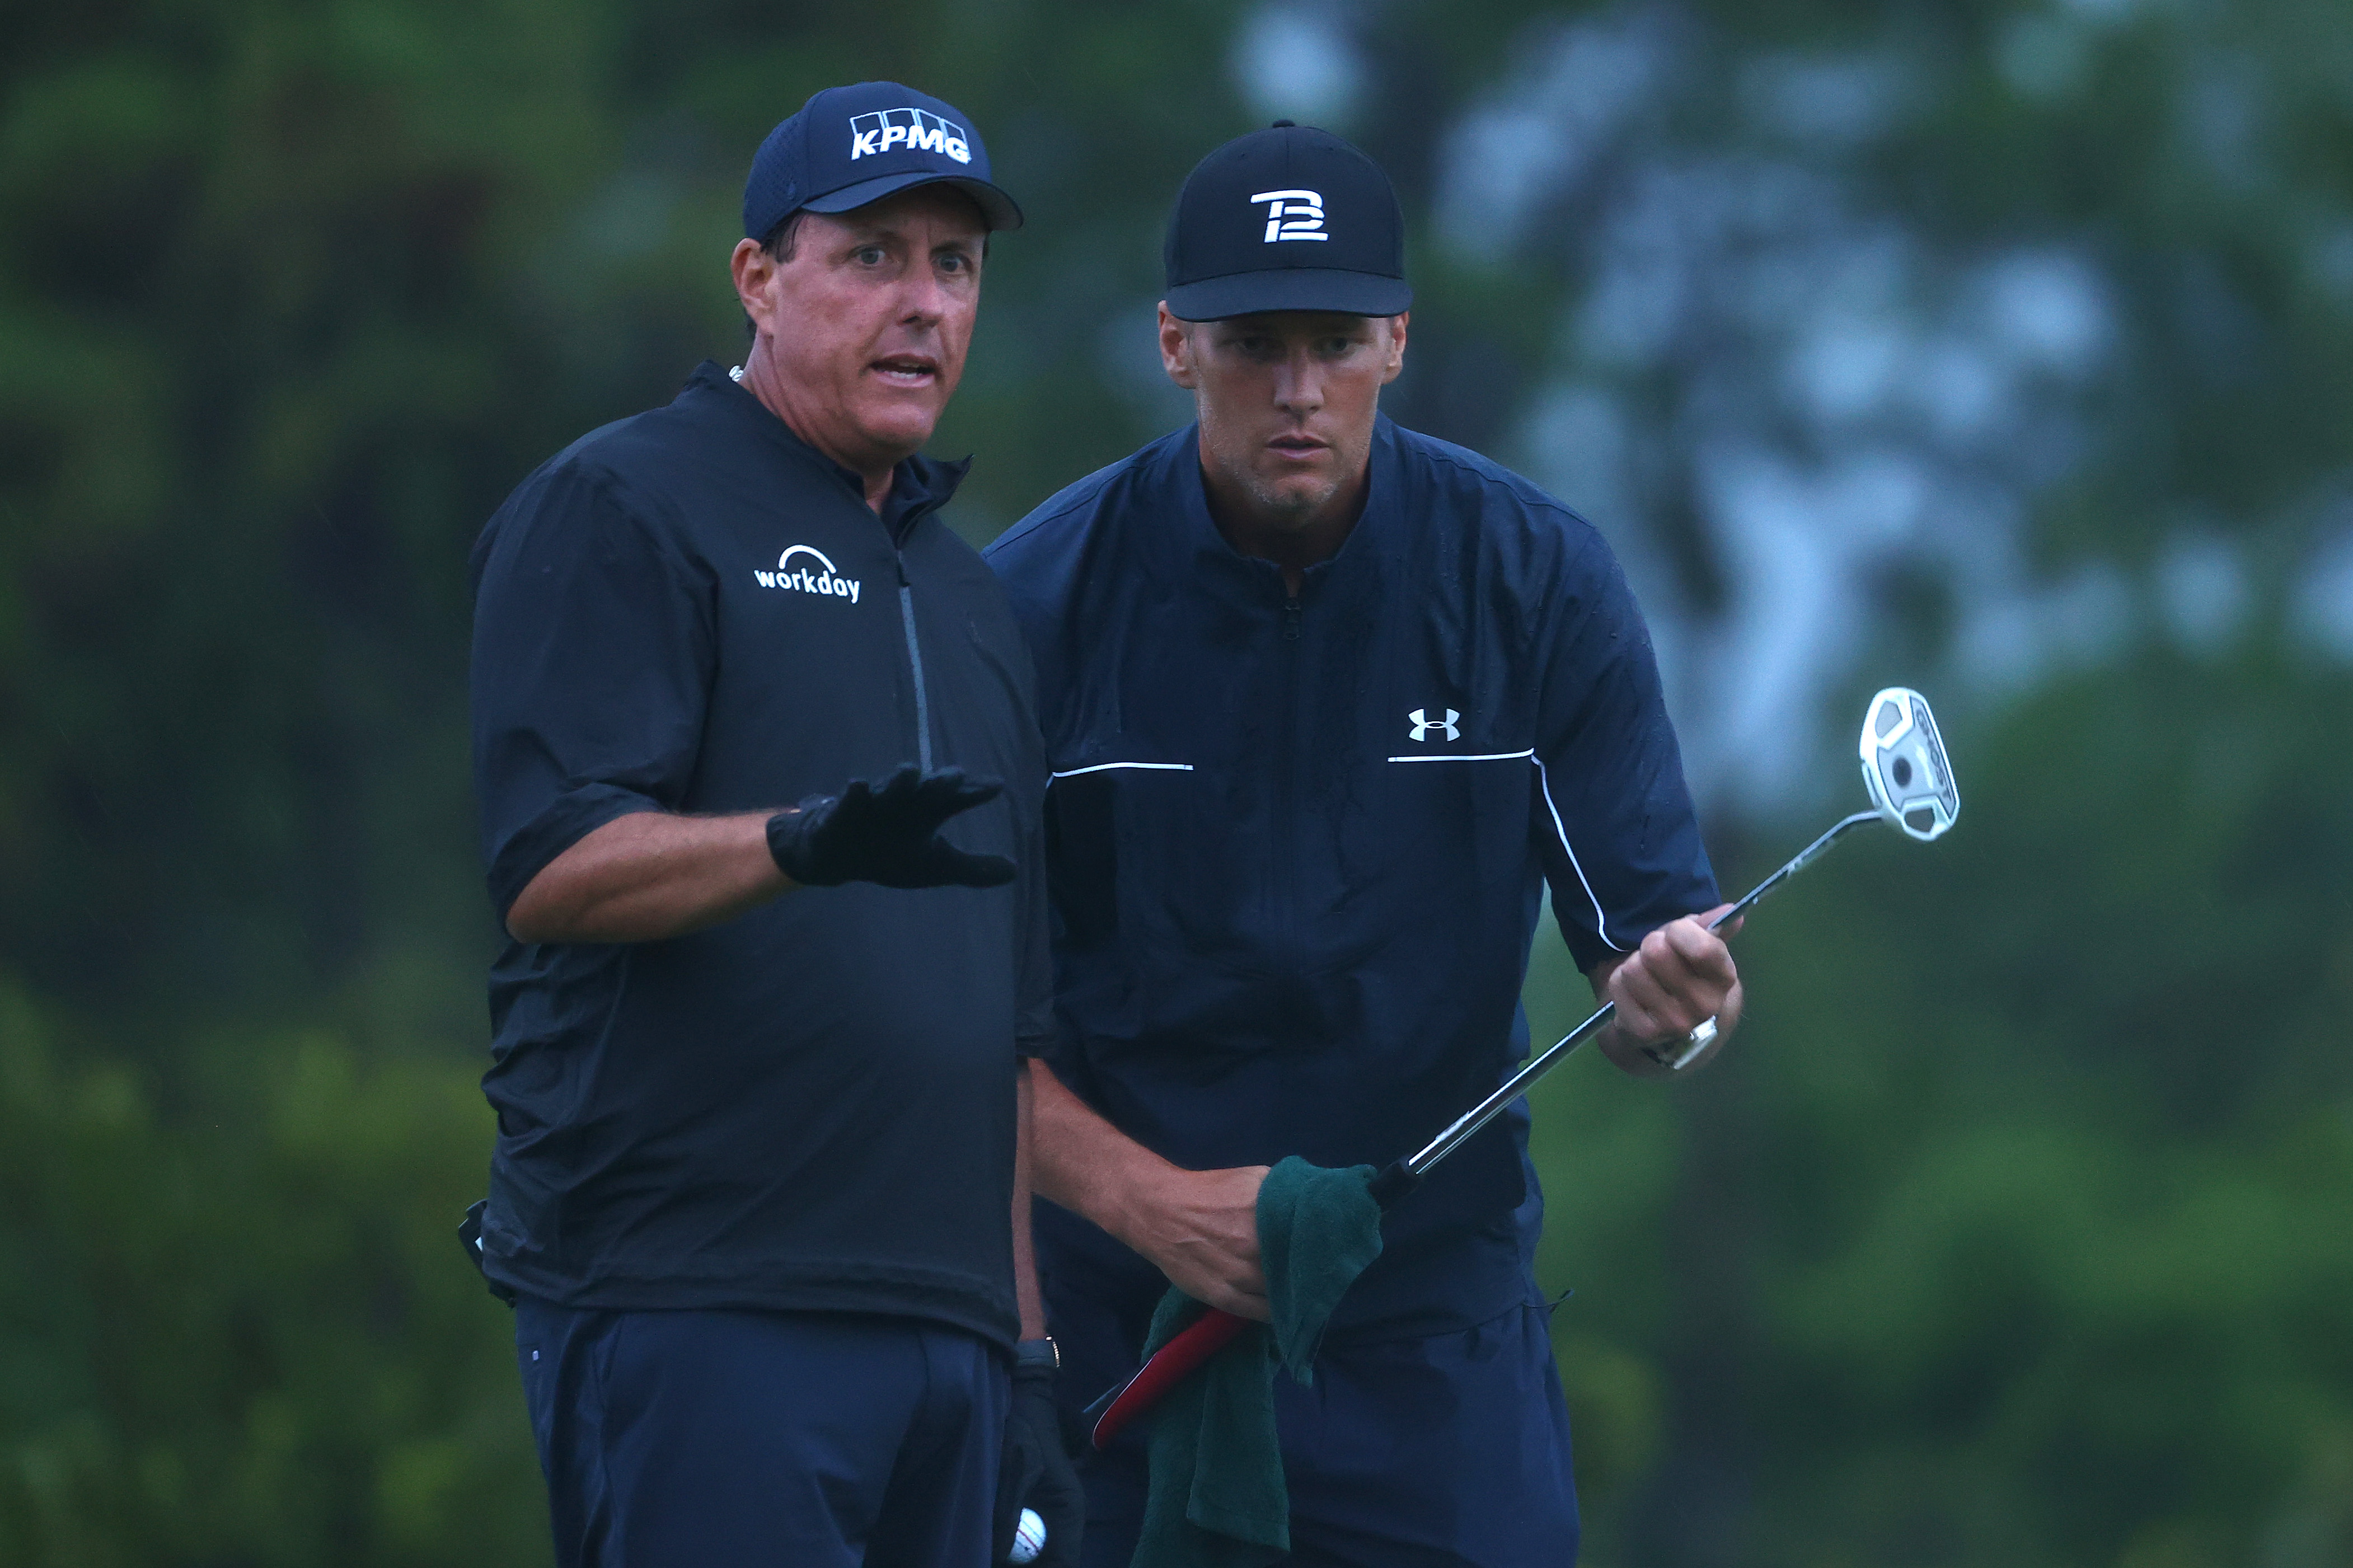 Tom Brady, Phil Mickelson vs. Aaron Rodgers, Bryson DeChambeau FREE LIVE  STREAM (7/6/21): Watch The Match 4 golf match online without cable | Time,  TV, channel - nj.com